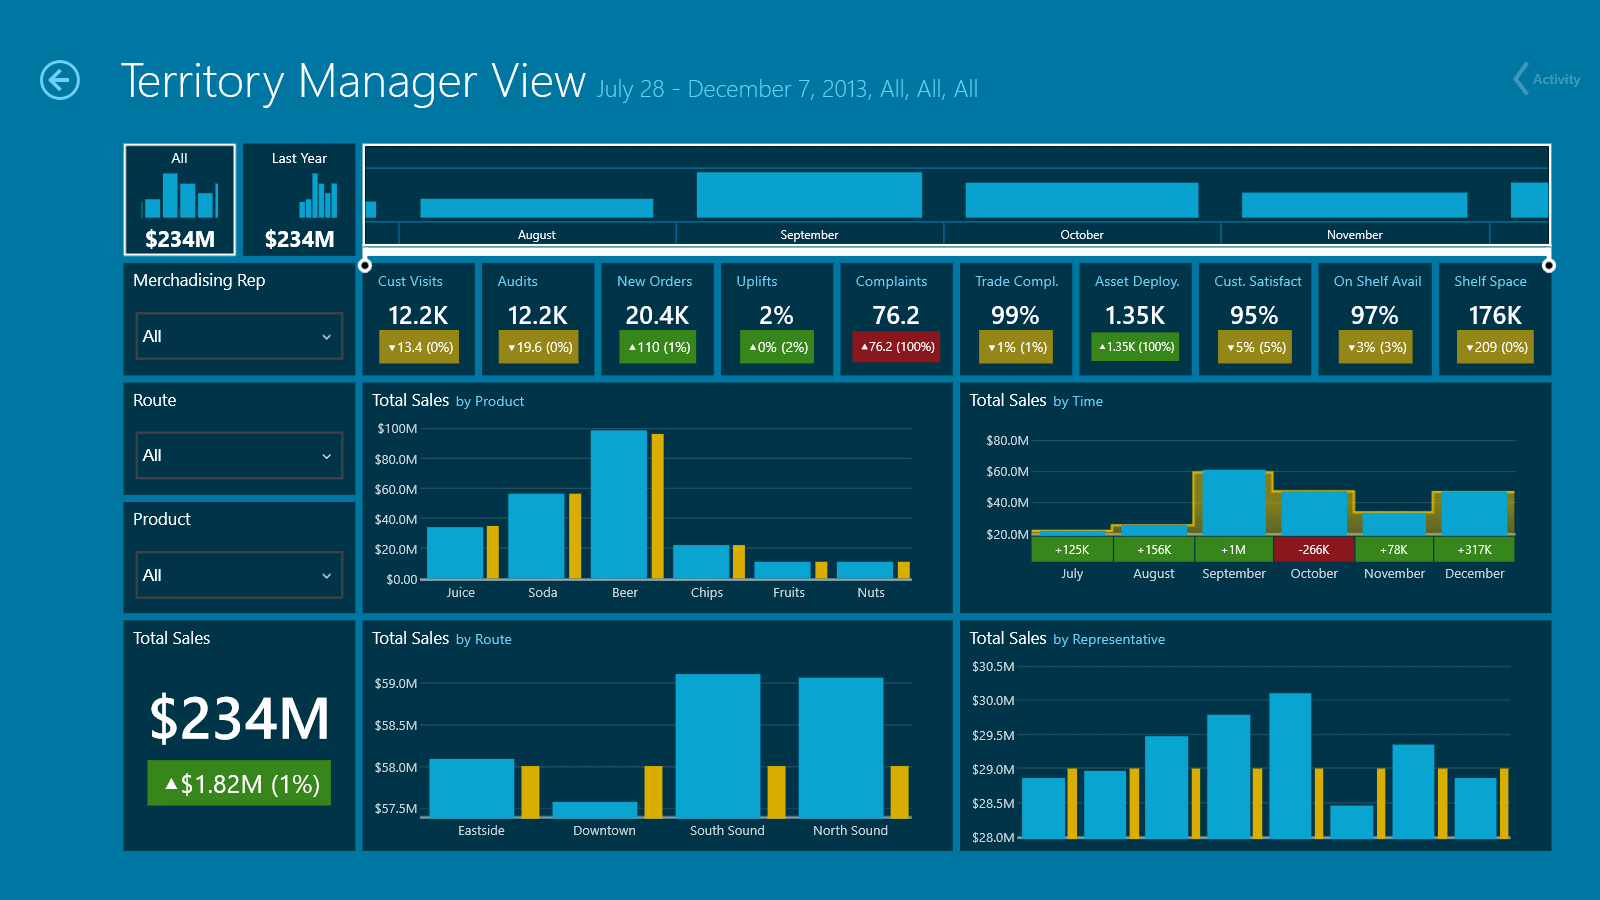 Dashboard: Territory Manager View